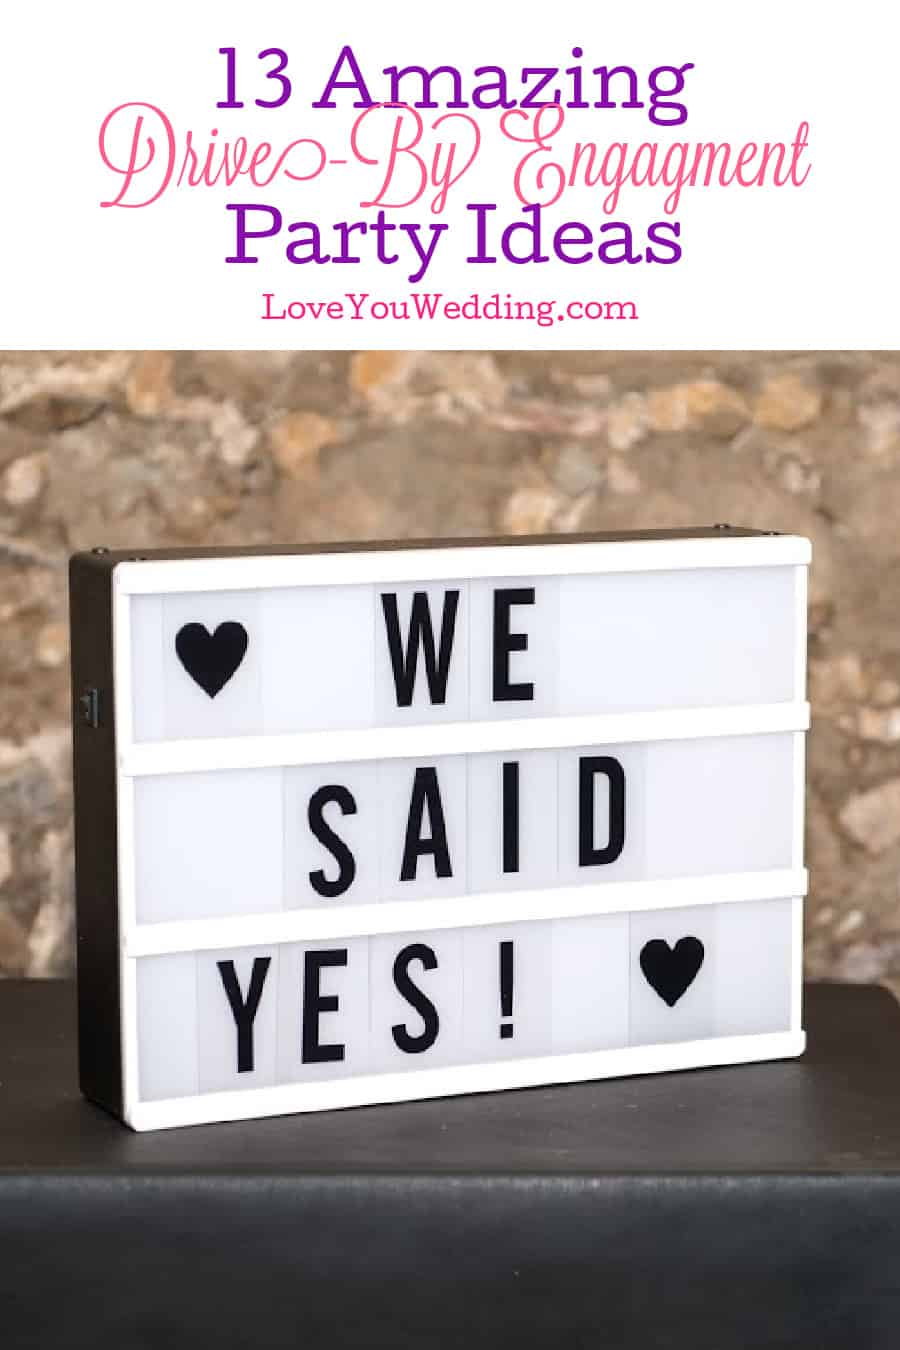 If you're looking for some awesome drive-by engagement party ideas, we've got you covered! We're talking themes, decor, favors and more!